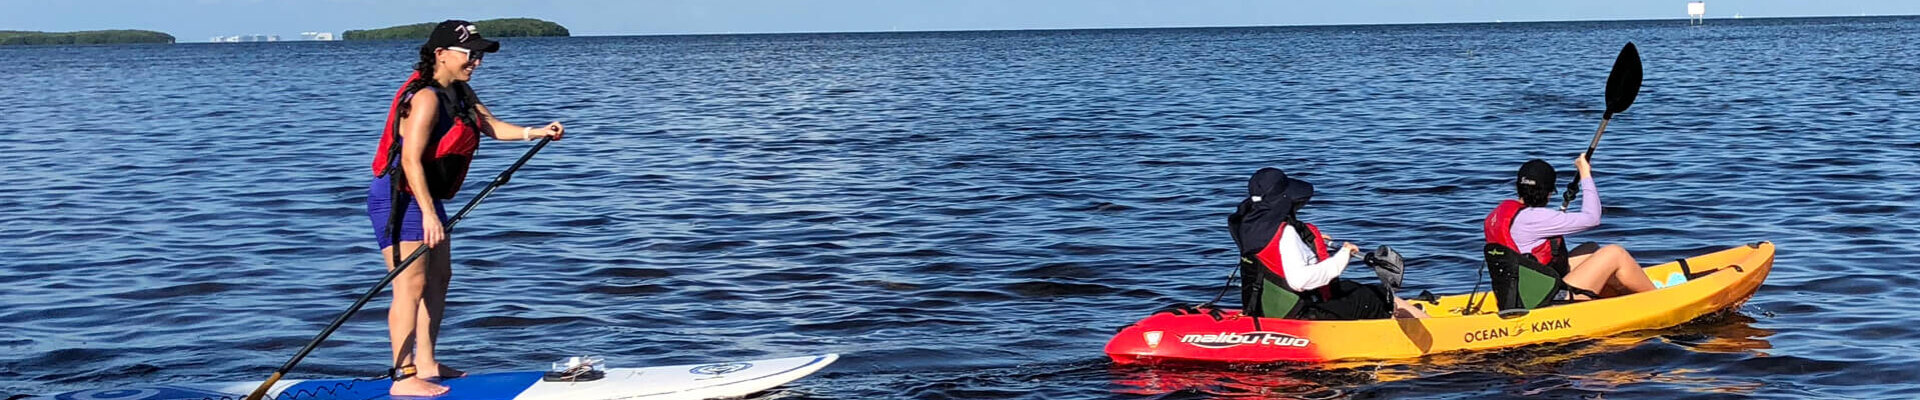 Deering Point Miami Kayak and Paddleboard Rentals